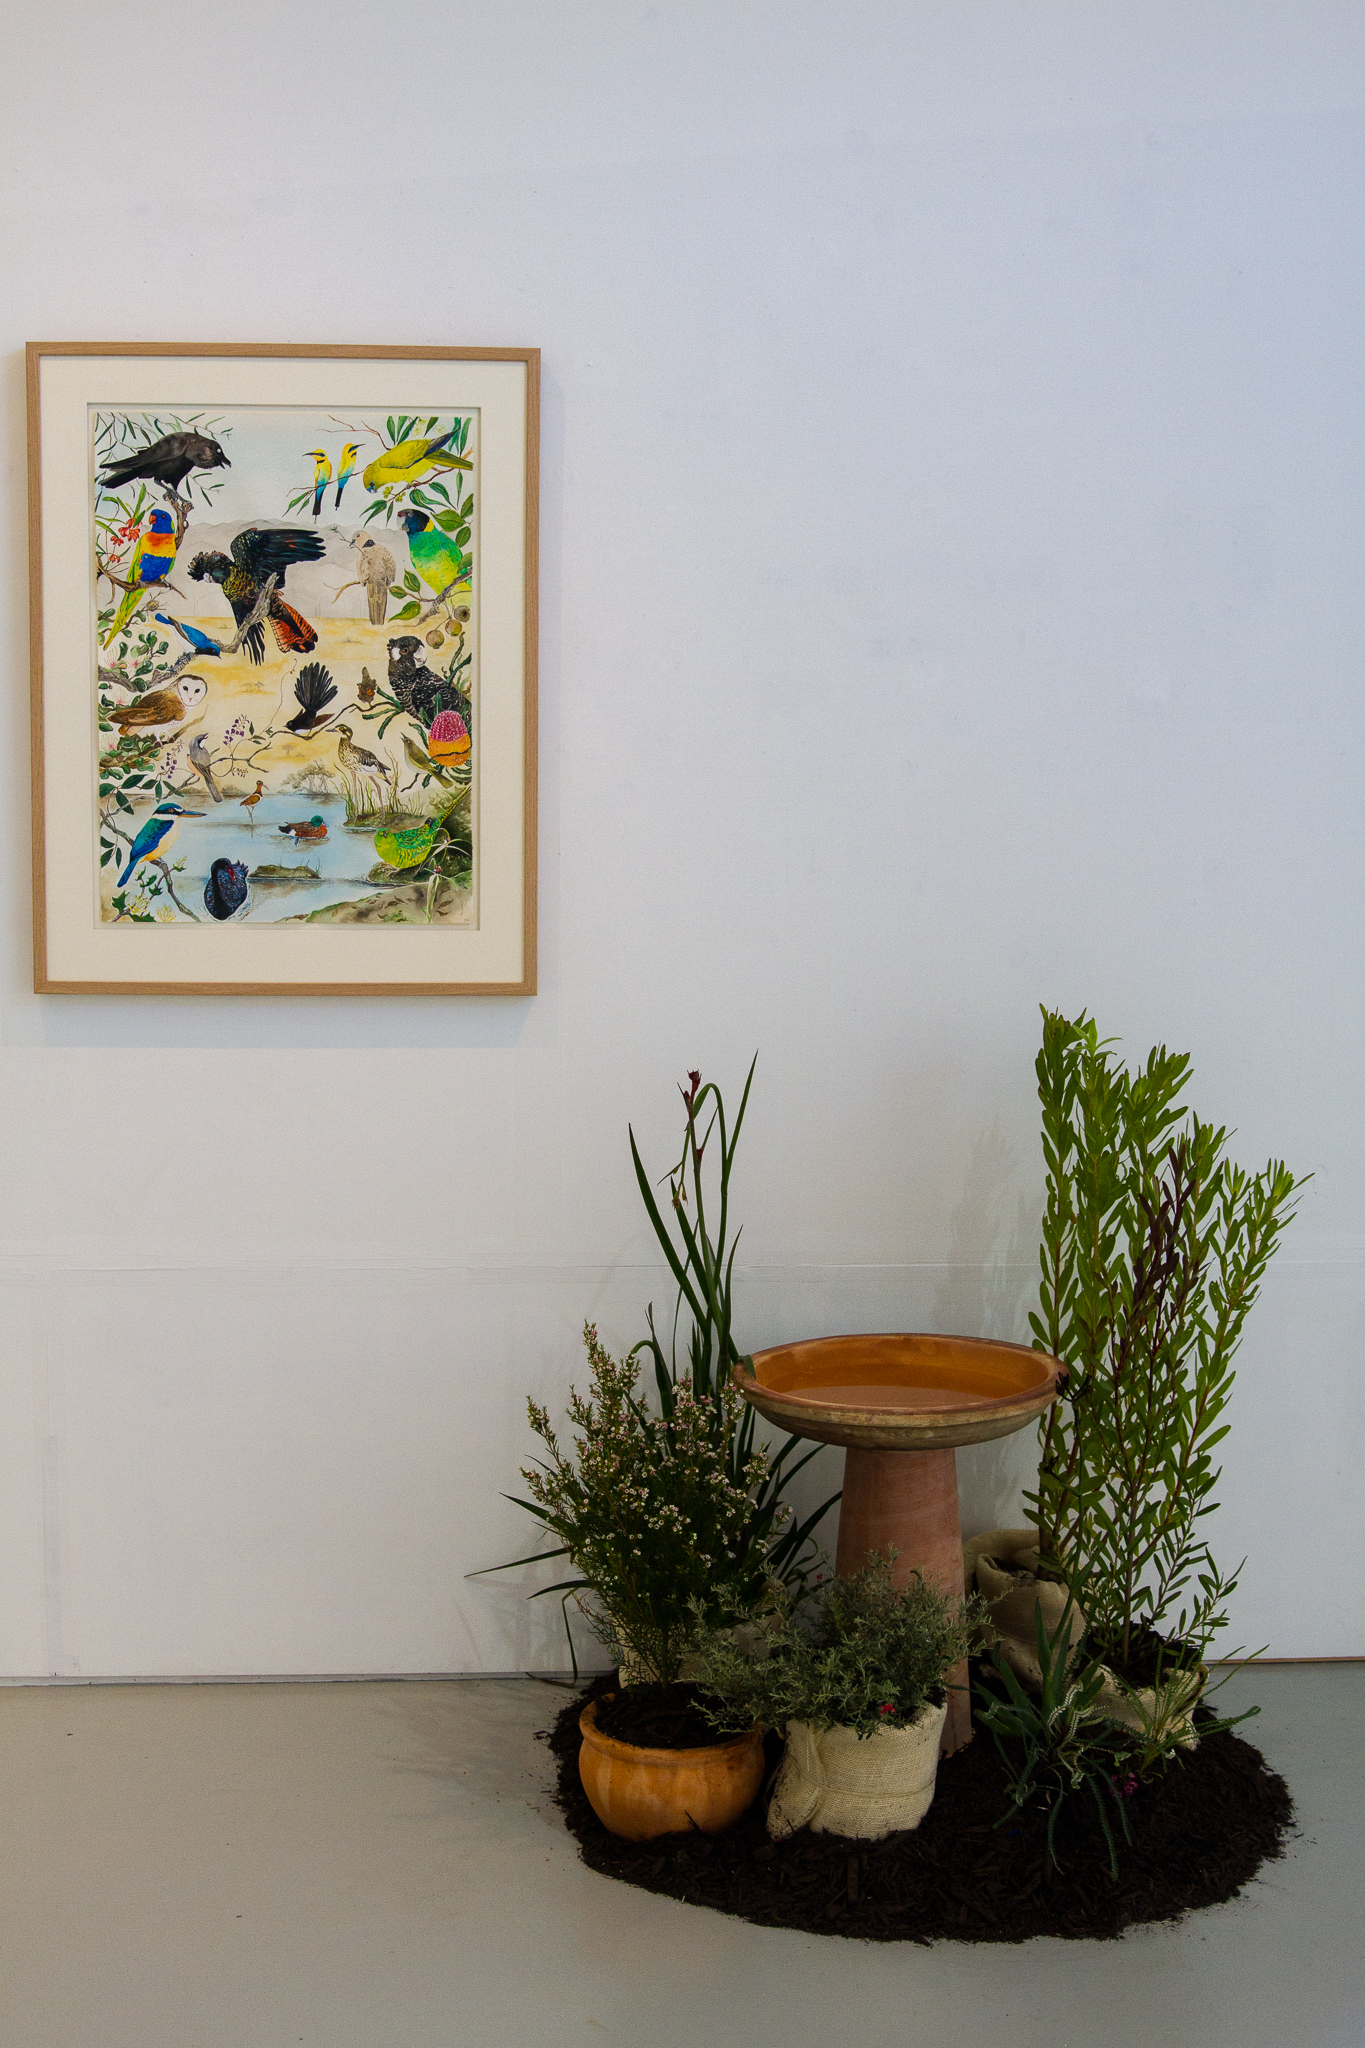 Donna Franklin,  Kaartdijinboort Kalyogool Wirt - No Knowledge Forever Empty , 2016, watercolour, acrylic, pencil, pen, plants, soil and bird bath, Framed drawing: 76cm x 56cm.